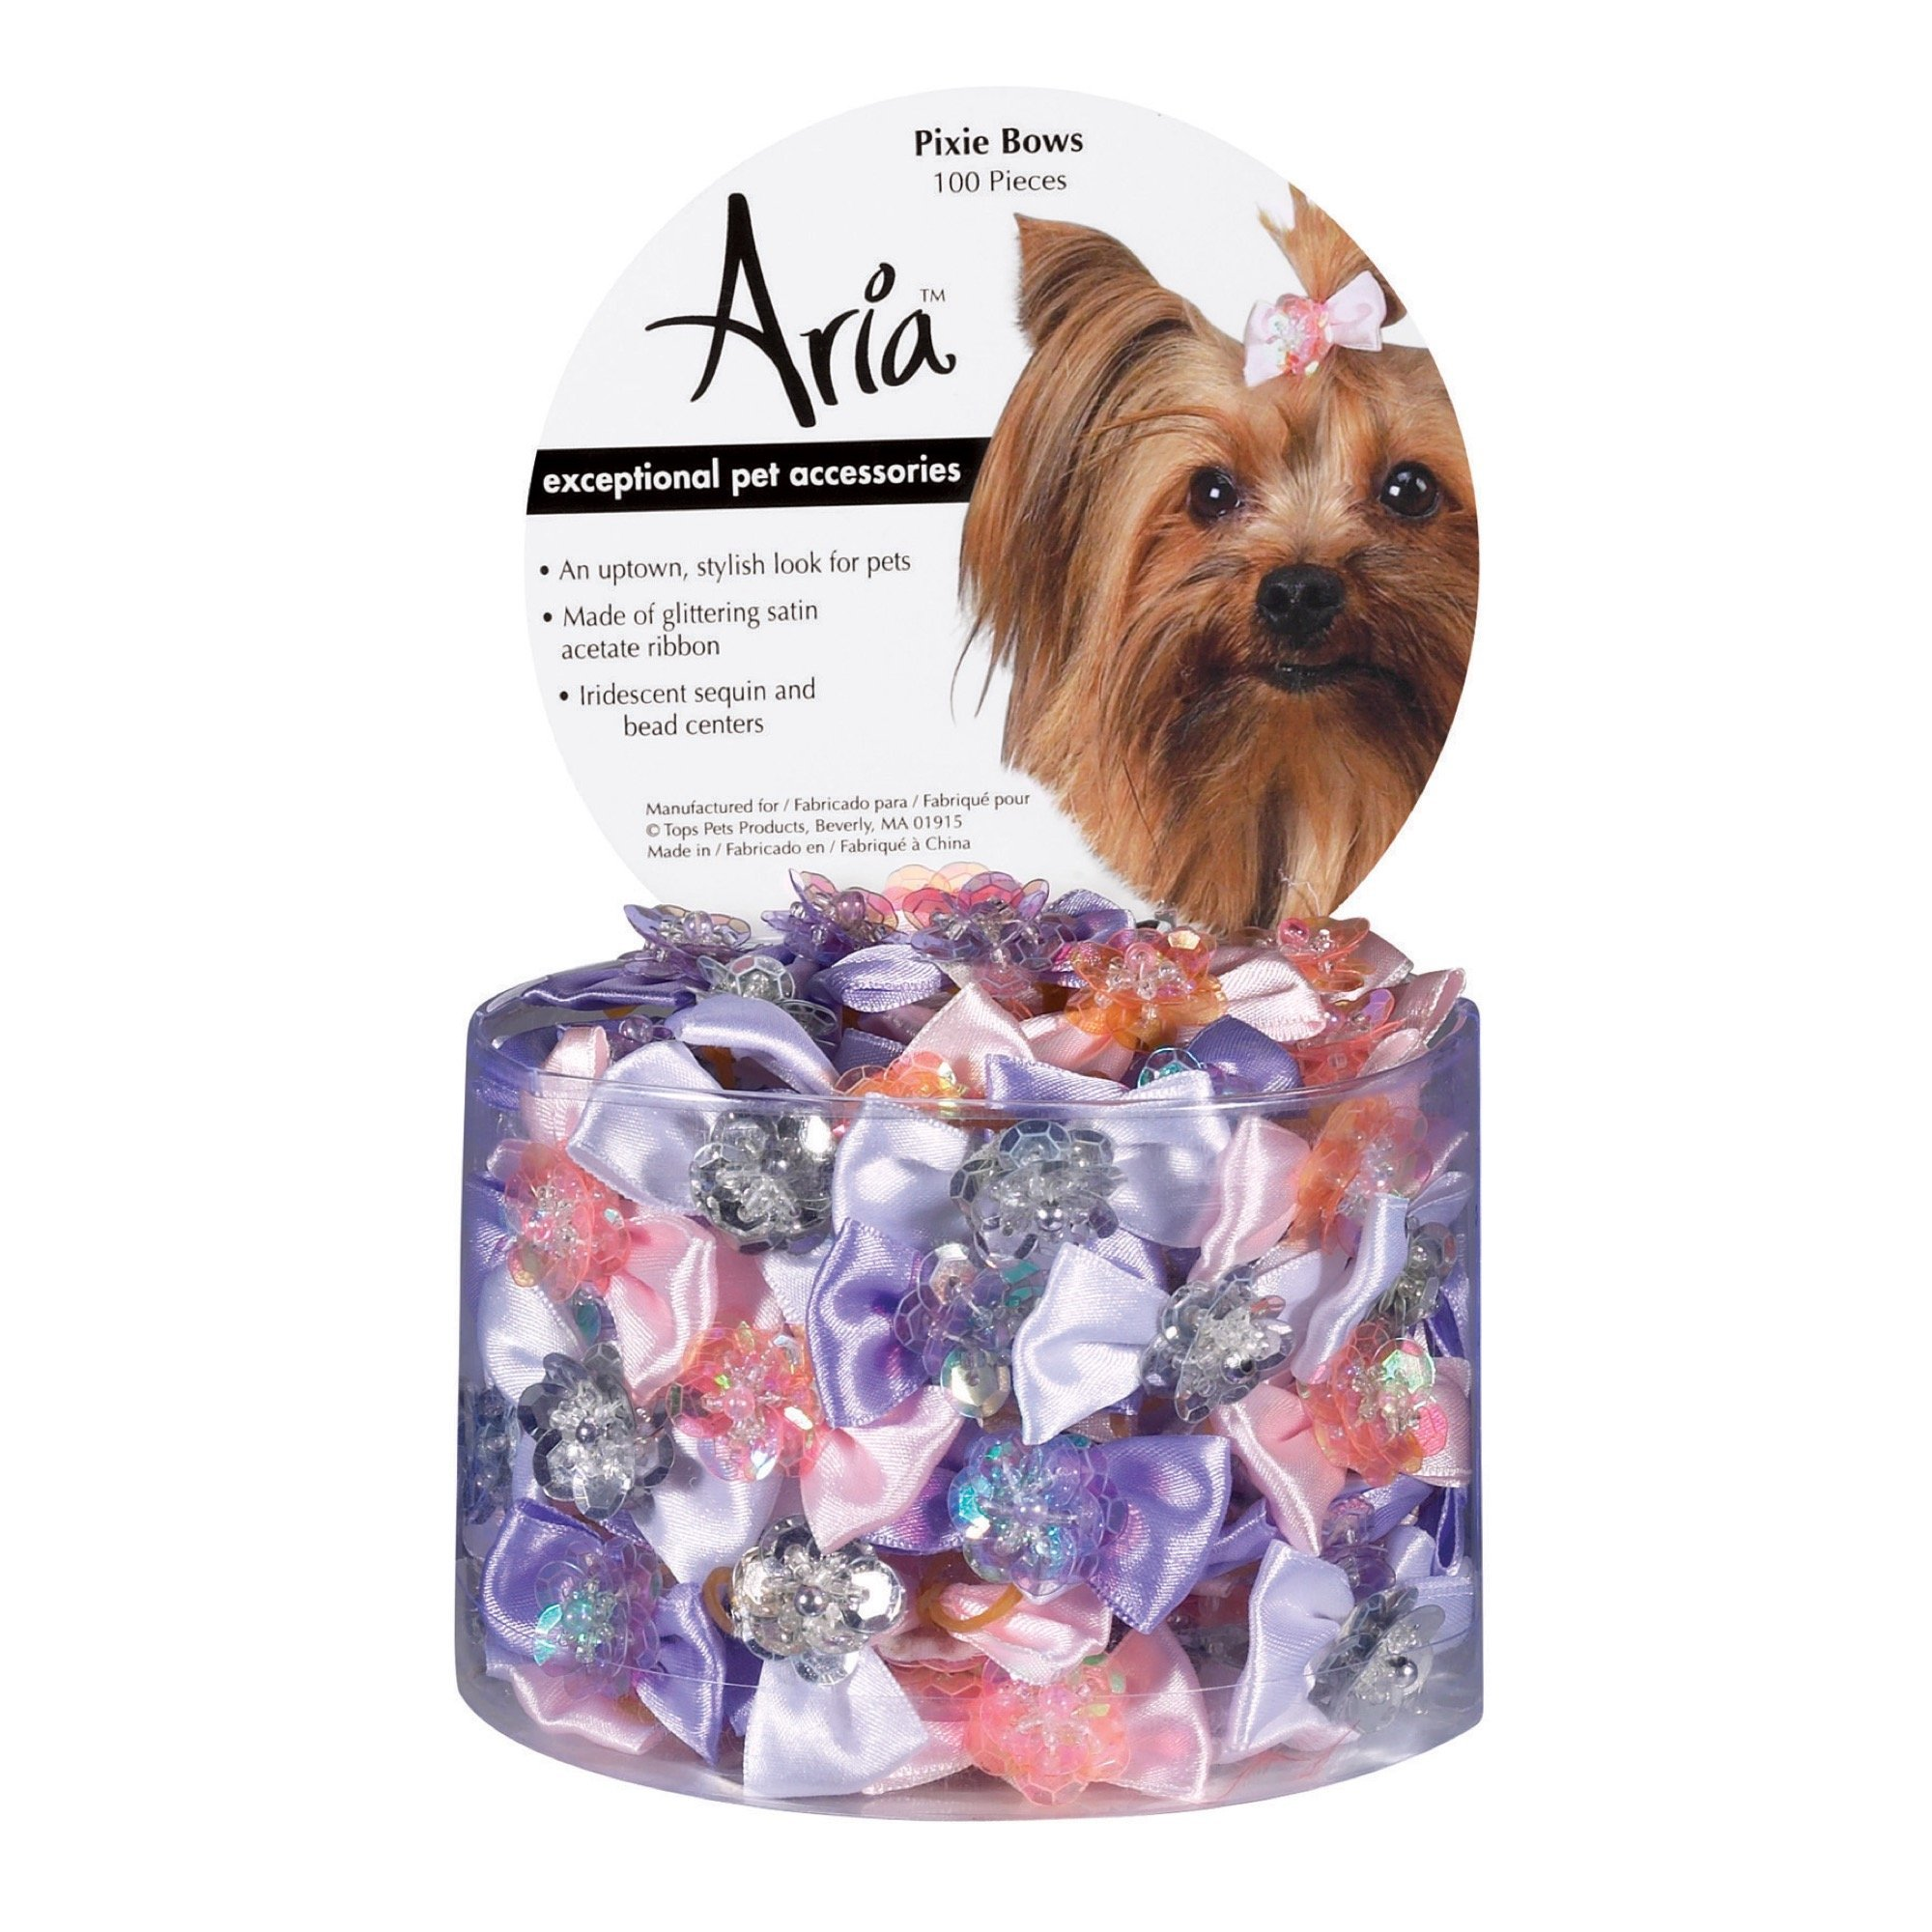 Aria Pixie Bows for Dogs, 100-Piece Canisters by Aria